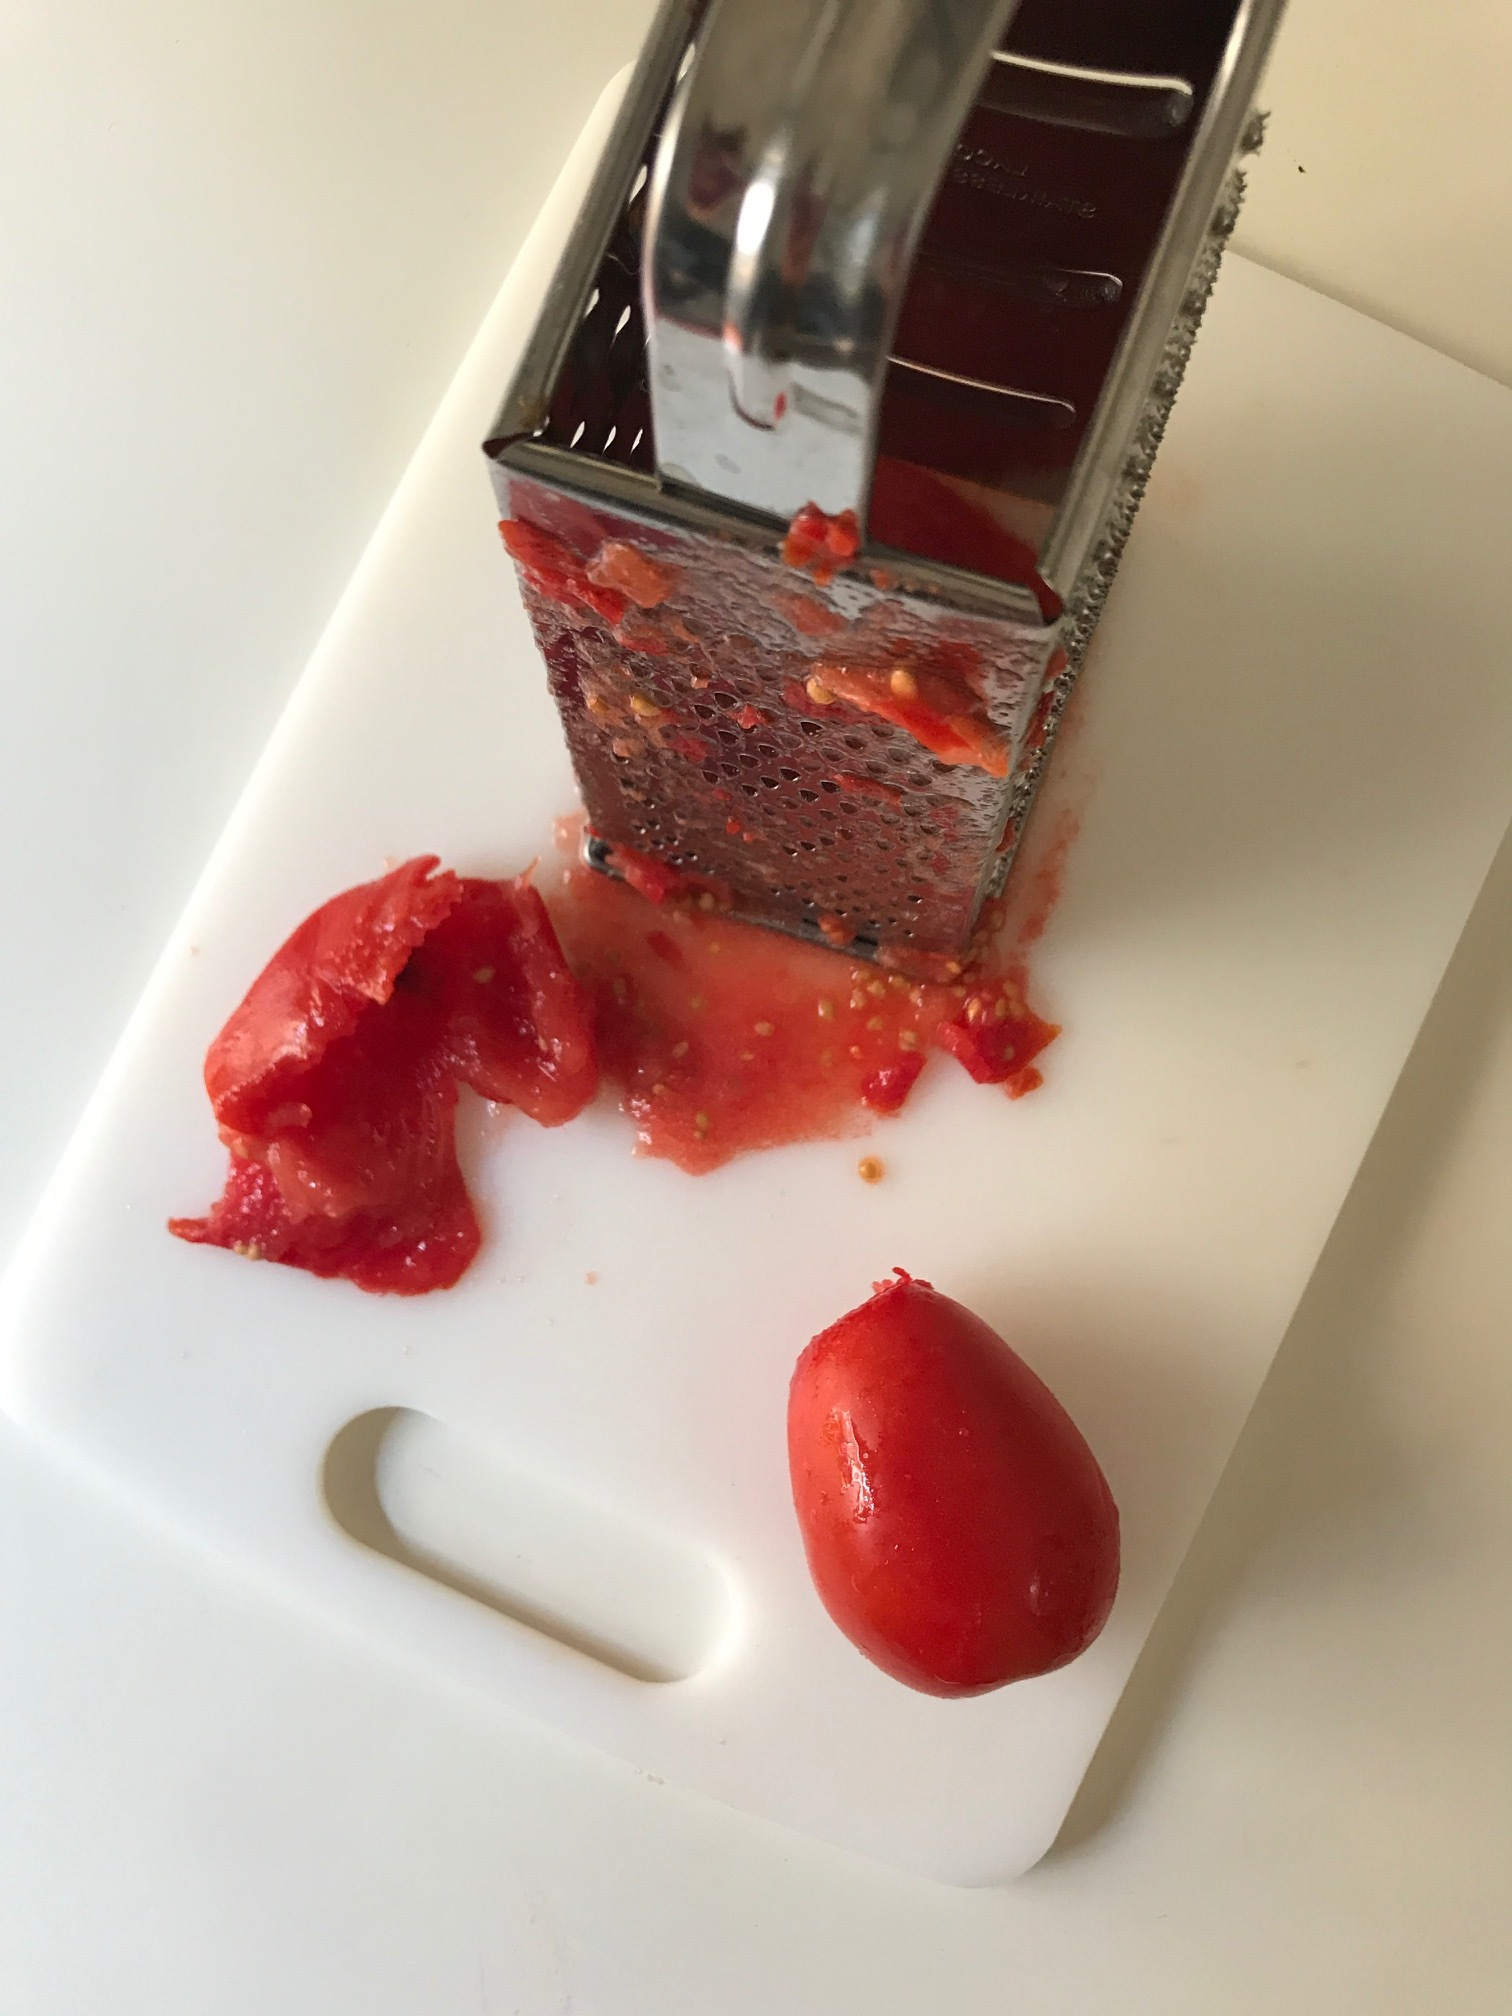 Grating tomatoes is an easy way to extract the pulp and juice leaving the skin behind.  Afterwards deseed by passing through a sieve